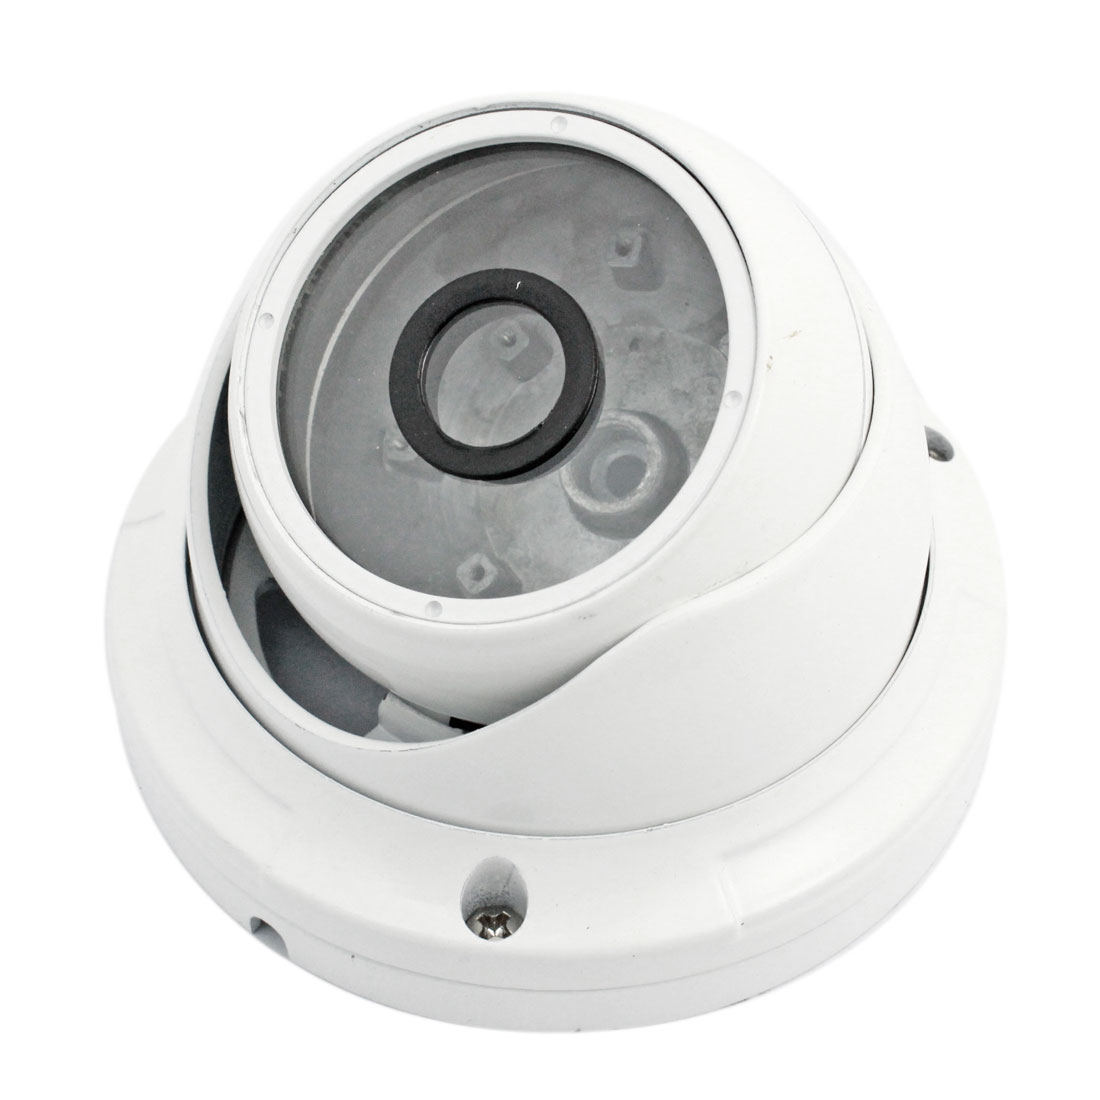 "Surveillance White Metal CCTV Dome Camera Housing Case 4.1"" Dia"